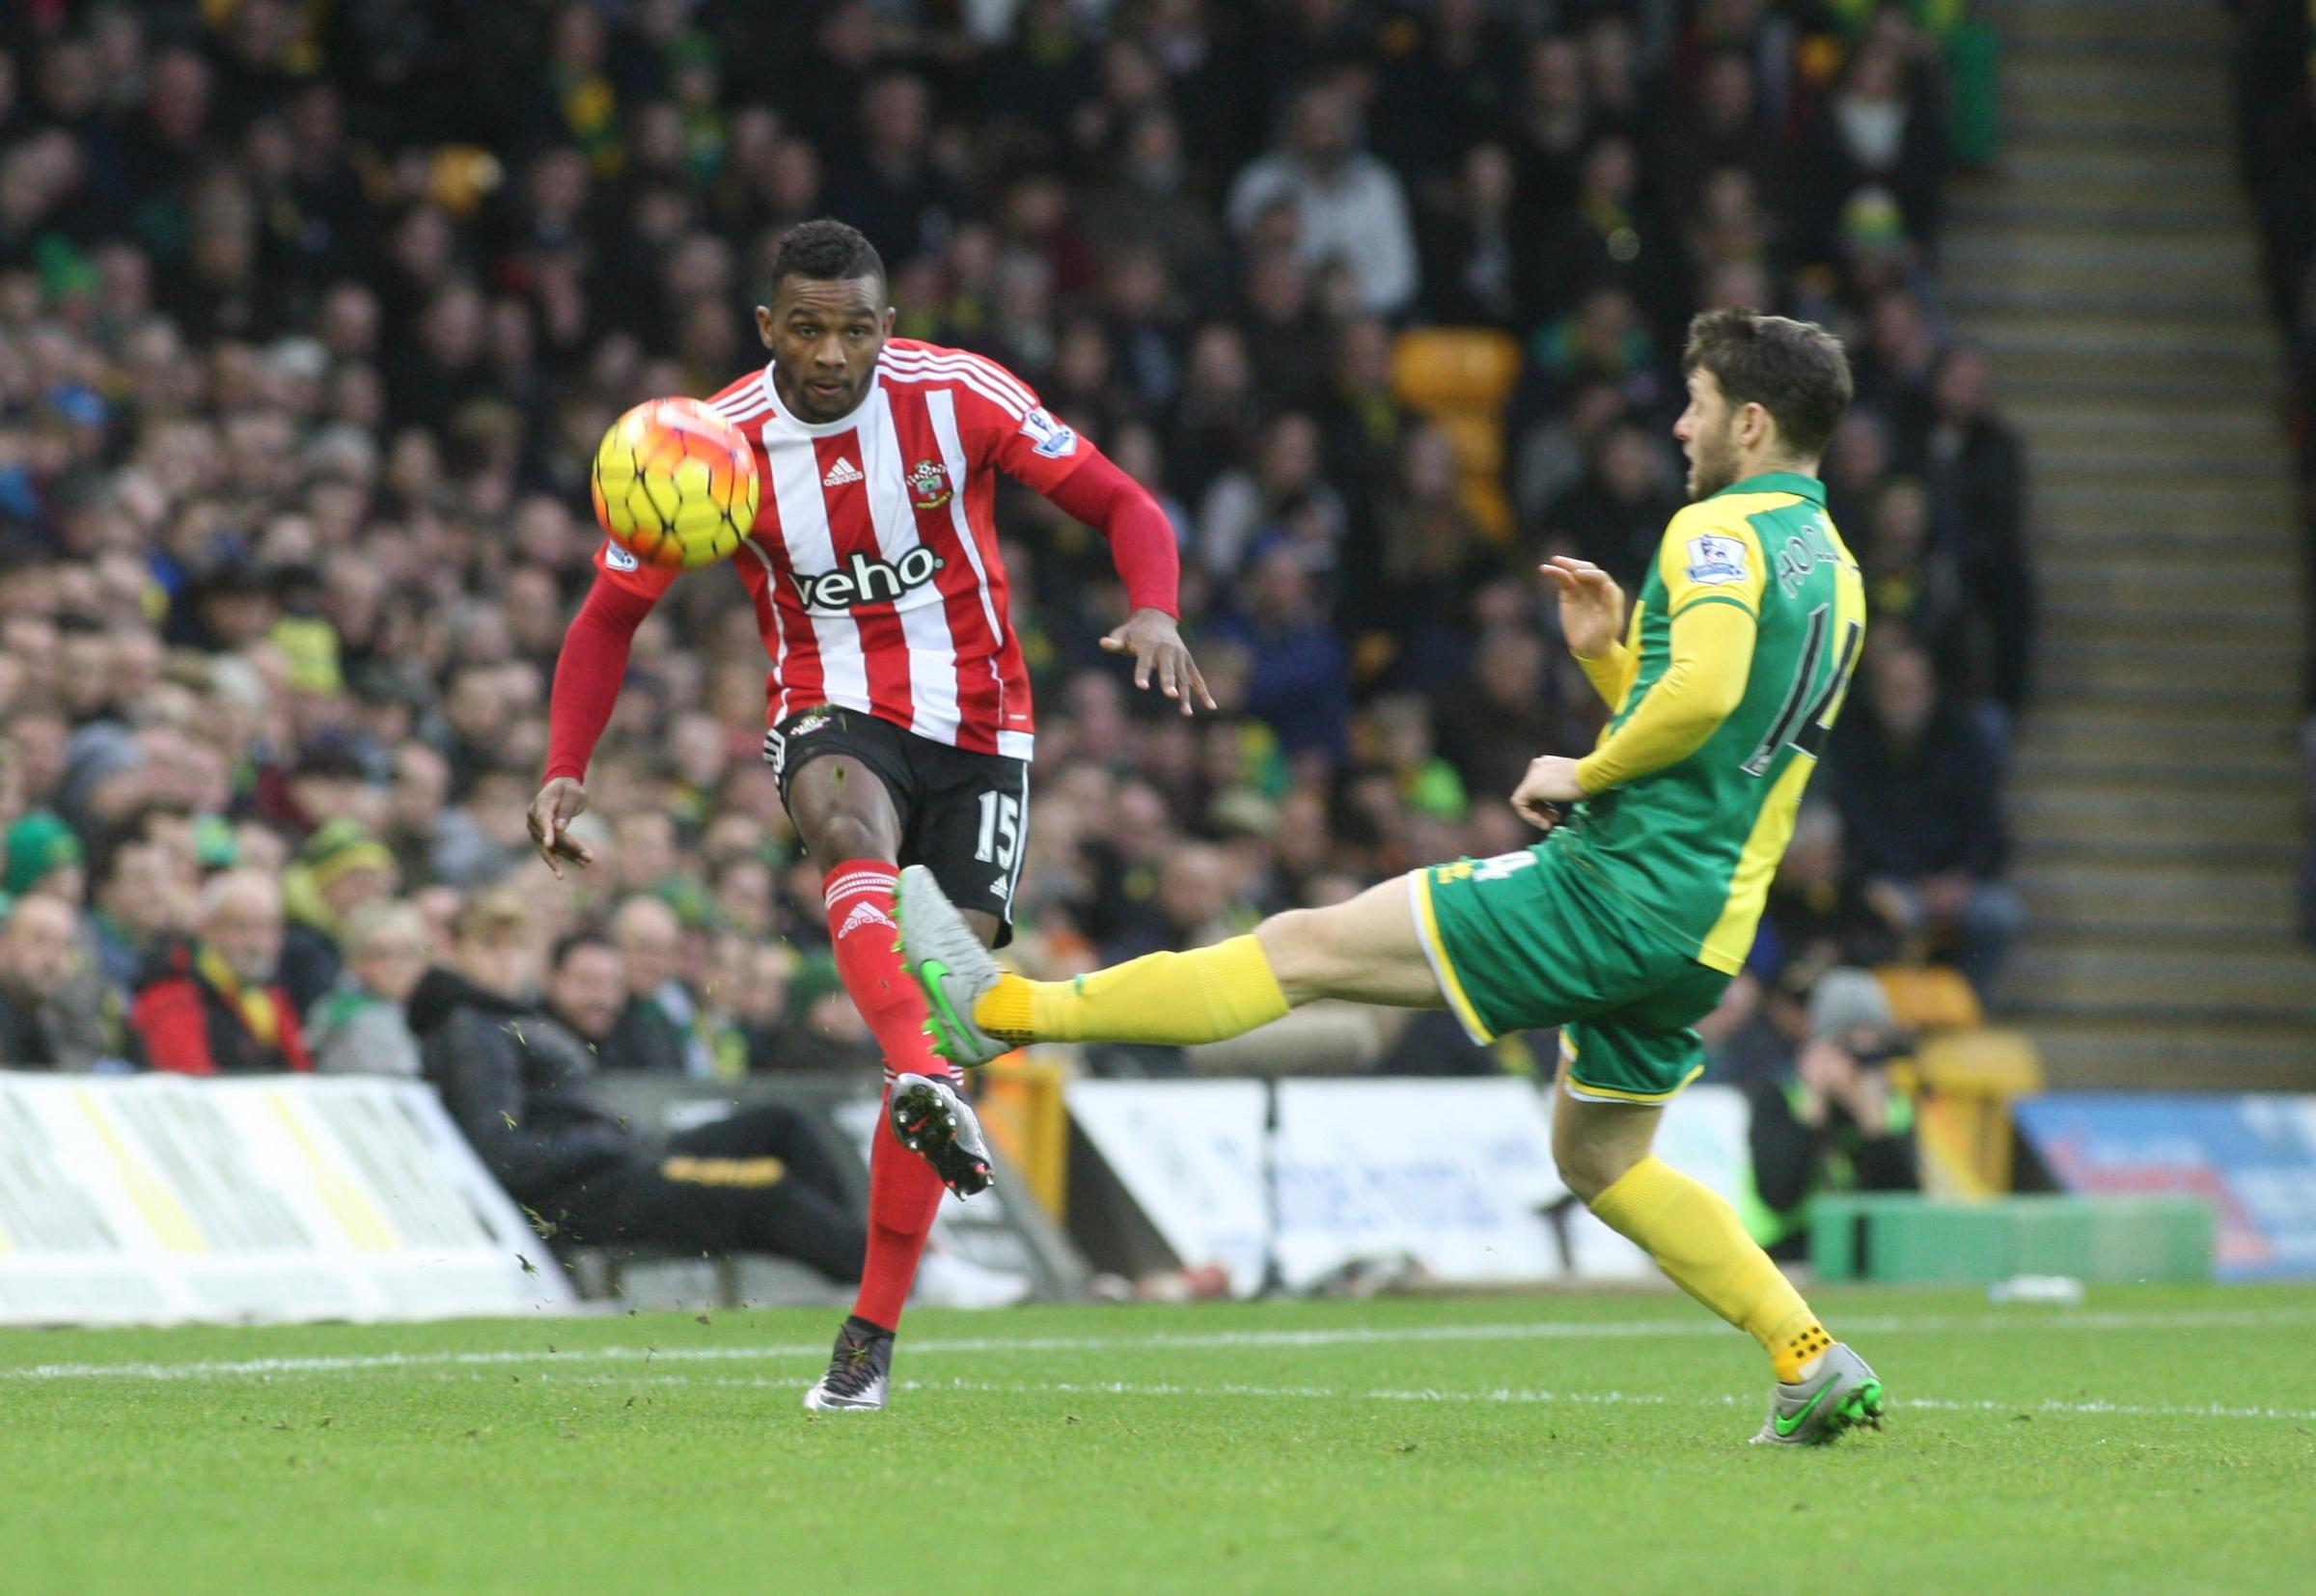 Norwich City 1-0 Southampton - in pictures